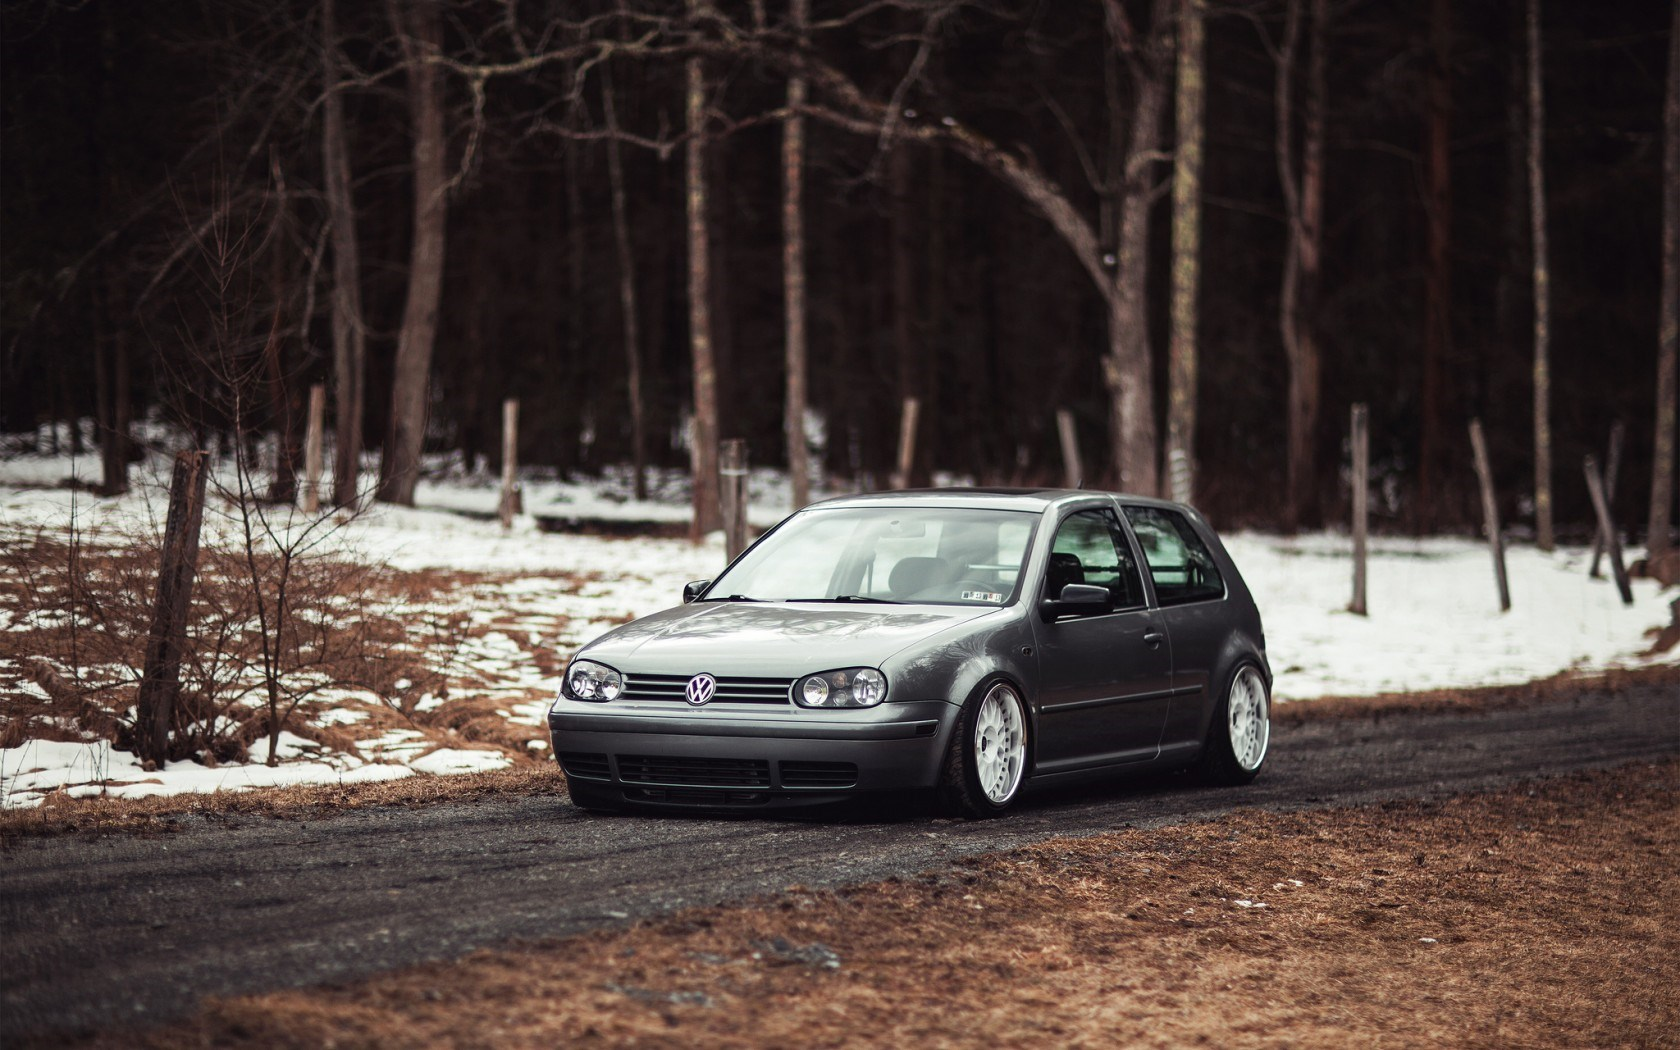 Volkswagen Golf Gray Car